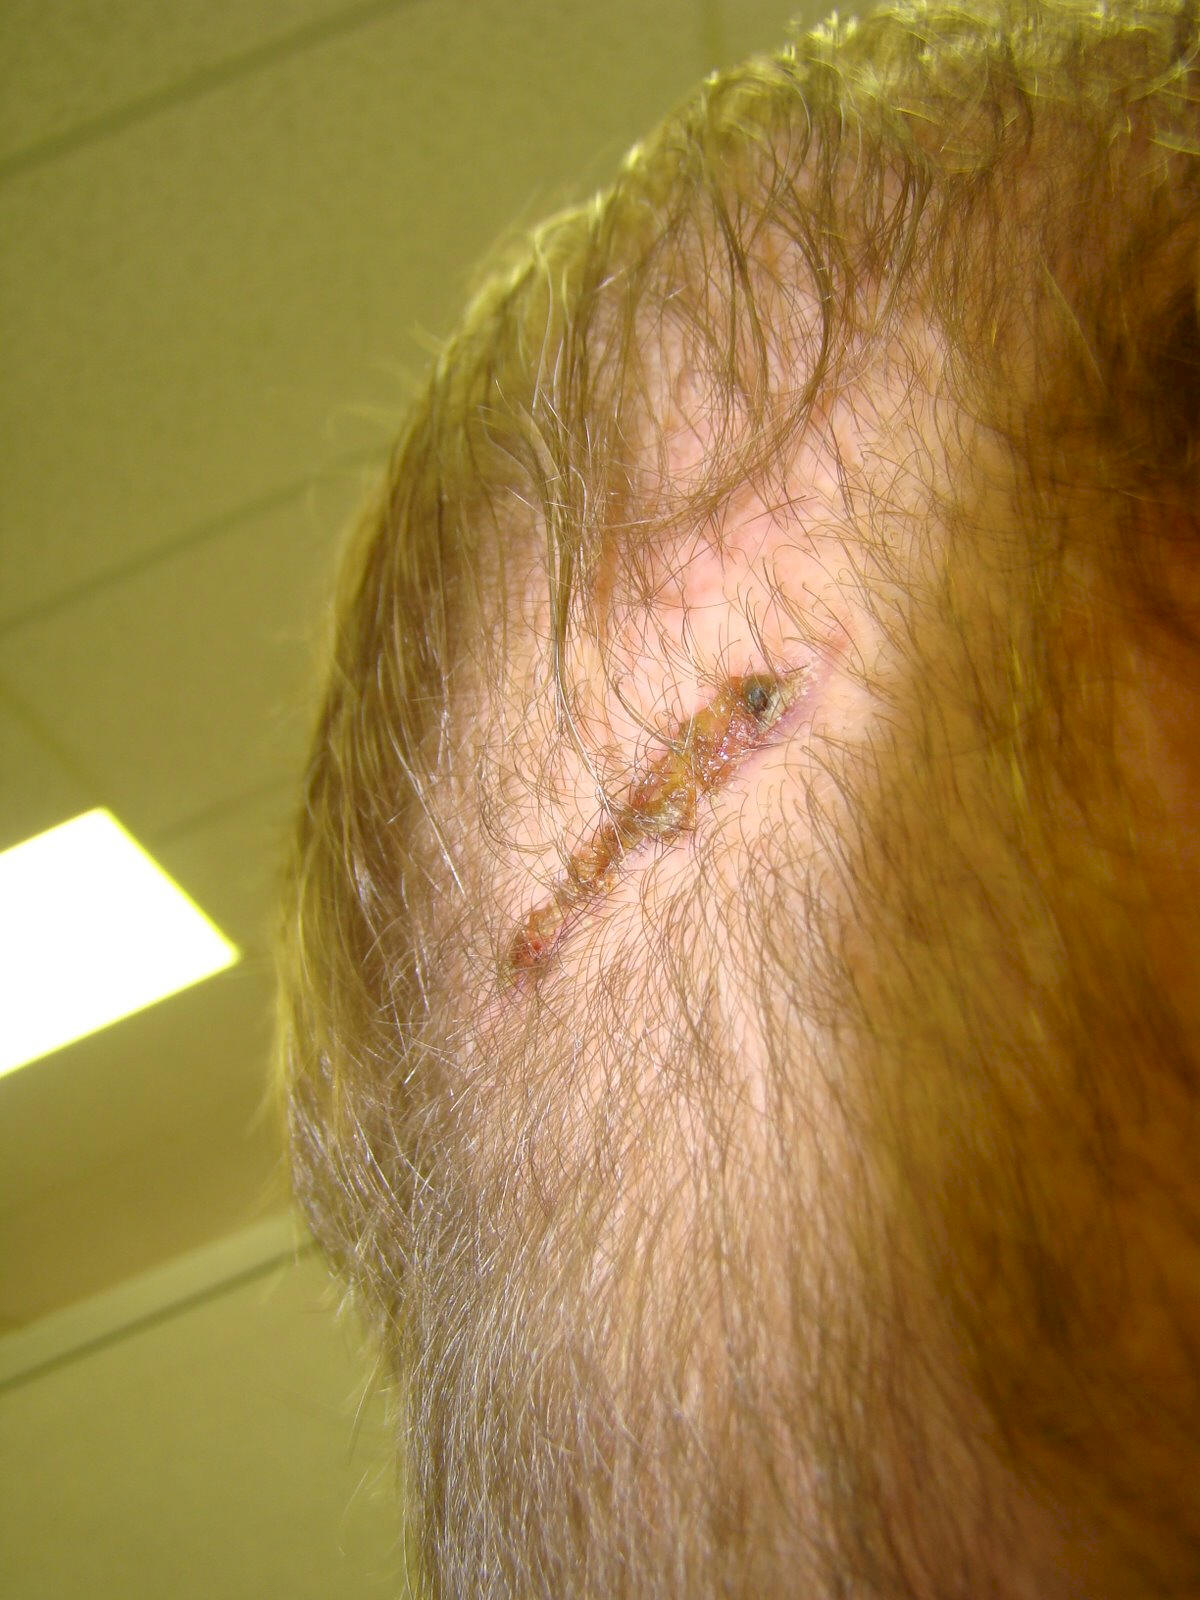 Acell hair transplant scar repair photo 1 month